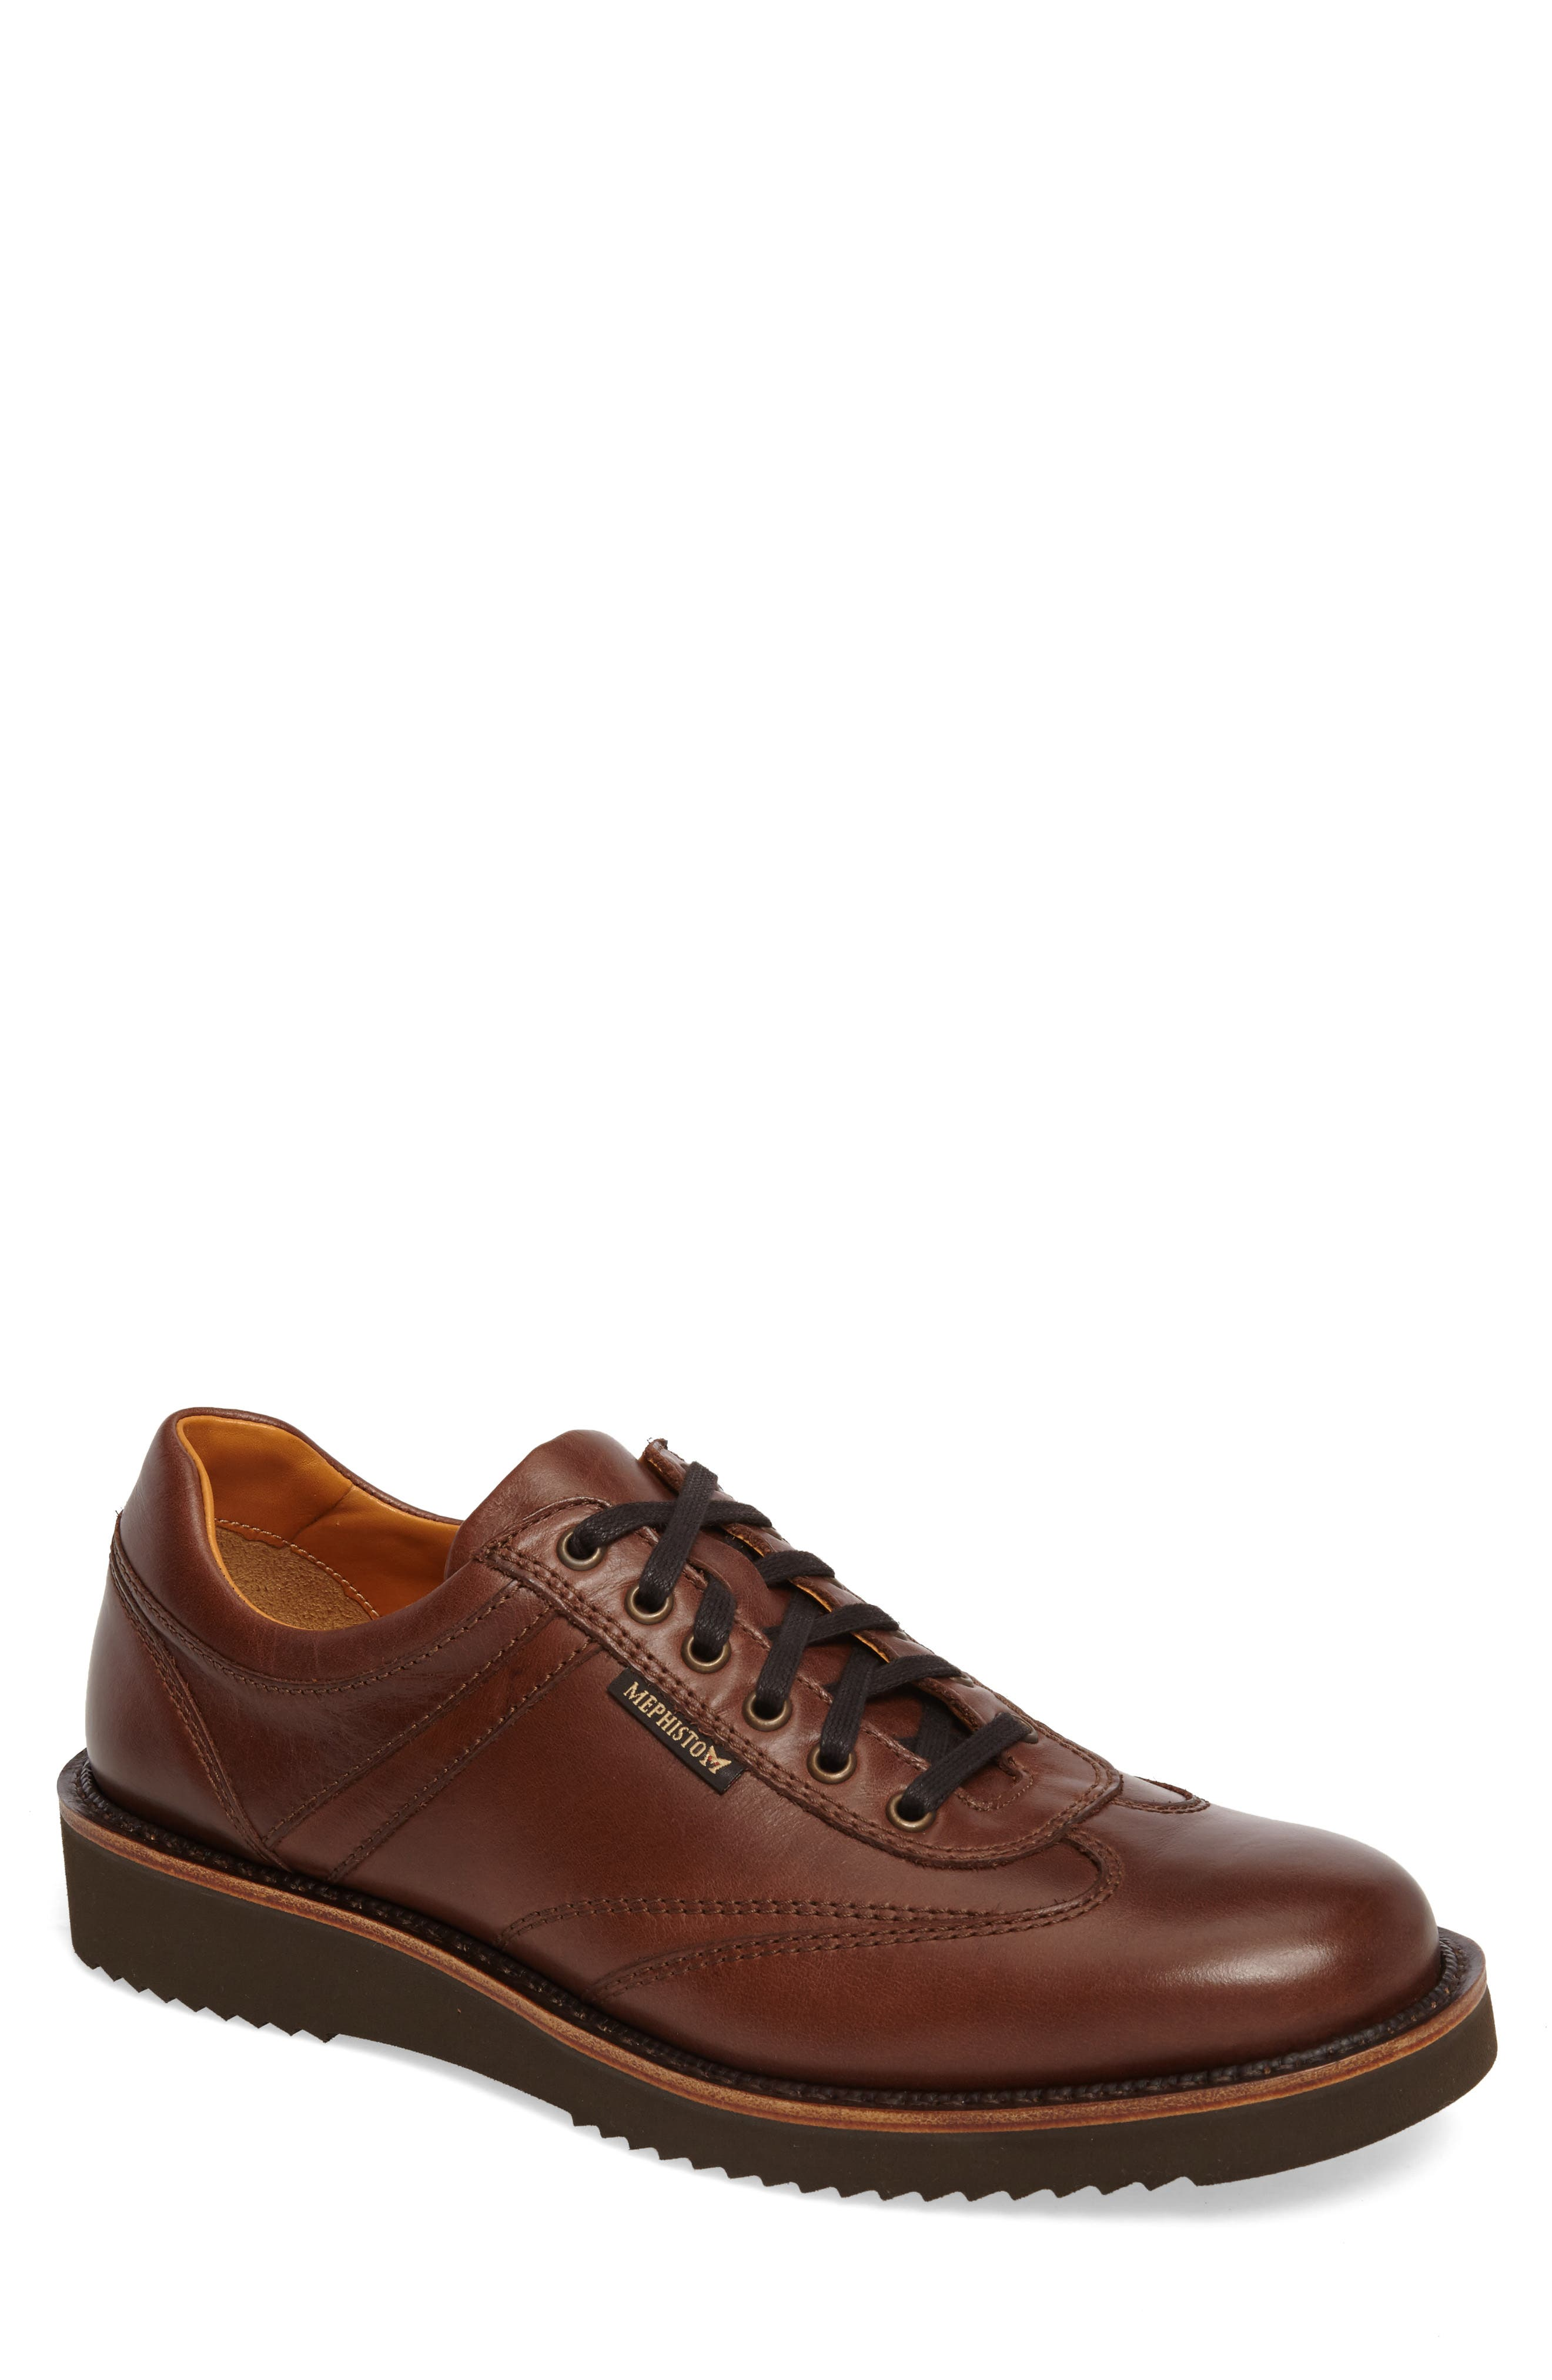 Adriano Sneaker,                             Main thumbnail 1, color,                             Chestnut Leather